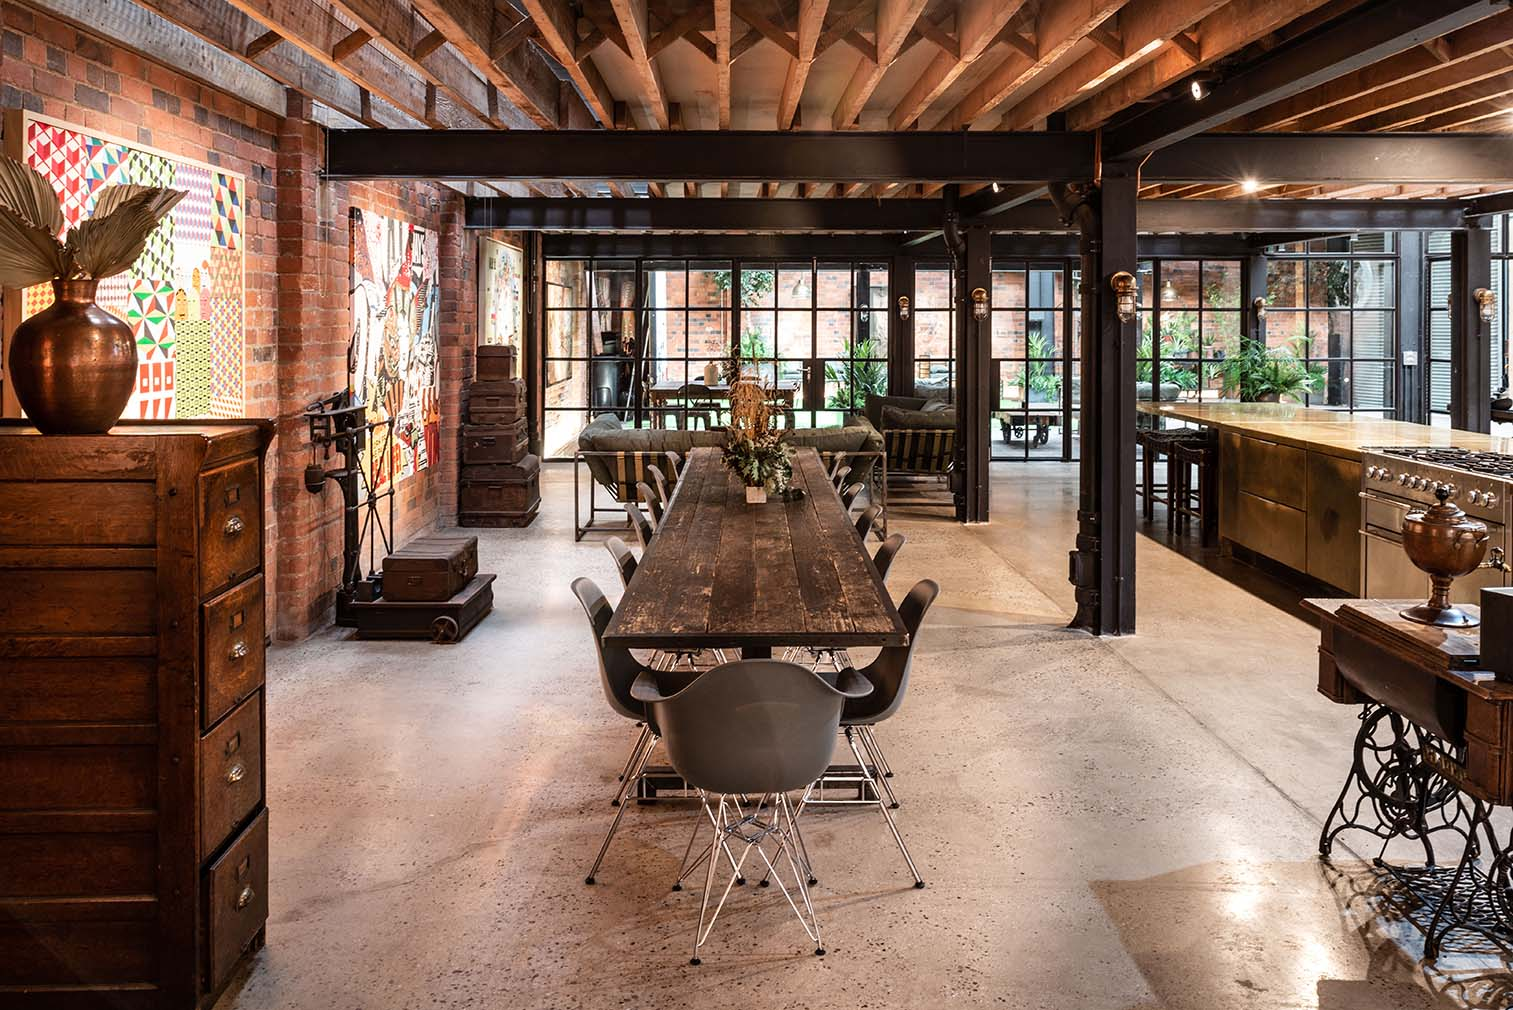 The Compound is an award-winning warehouse conversion in Birmingham's Jewellery Quarter home to a cinema, office space and set of apartments.